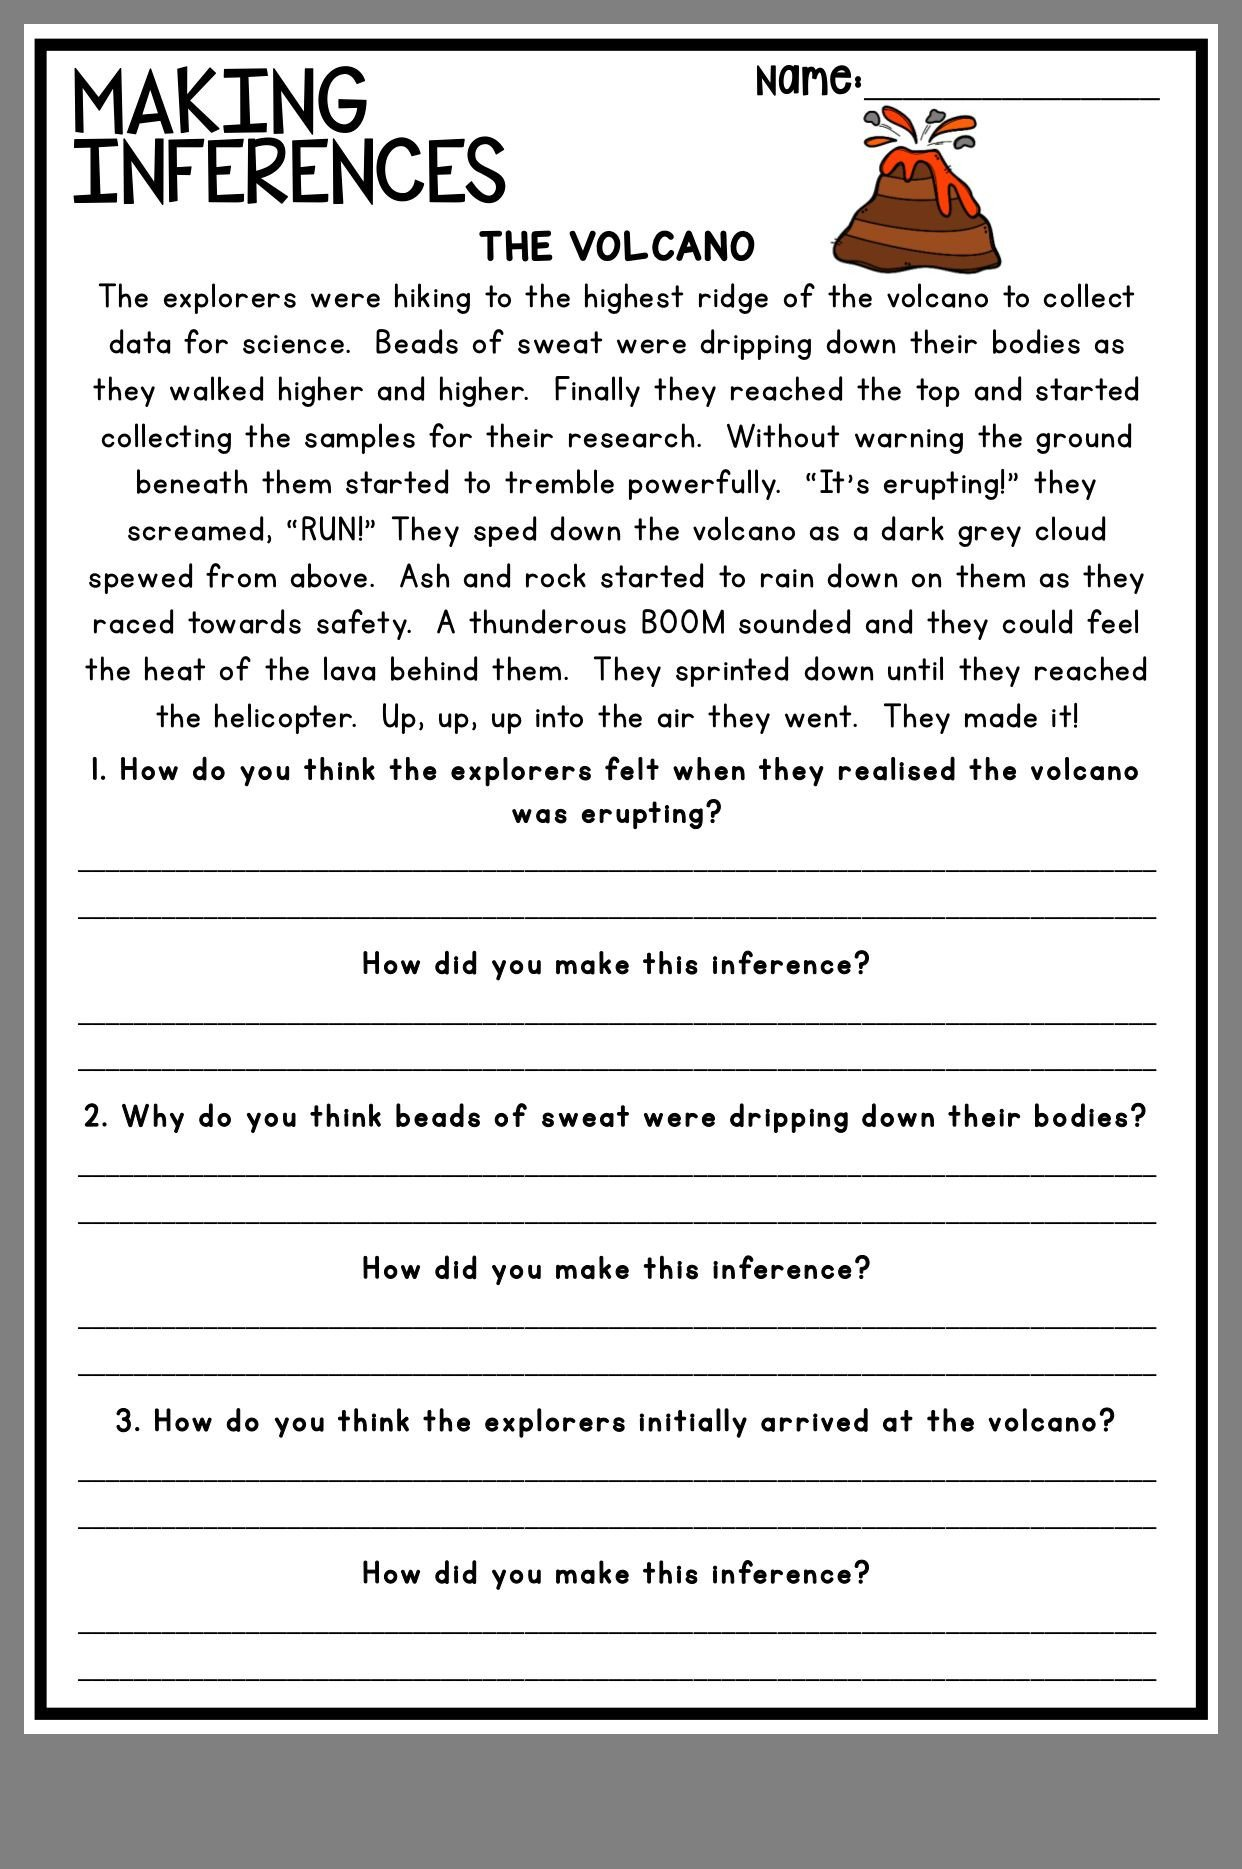 Inference Worksheets for 4th Grade Pin by Audrey C On A Teacher S Best Ideas